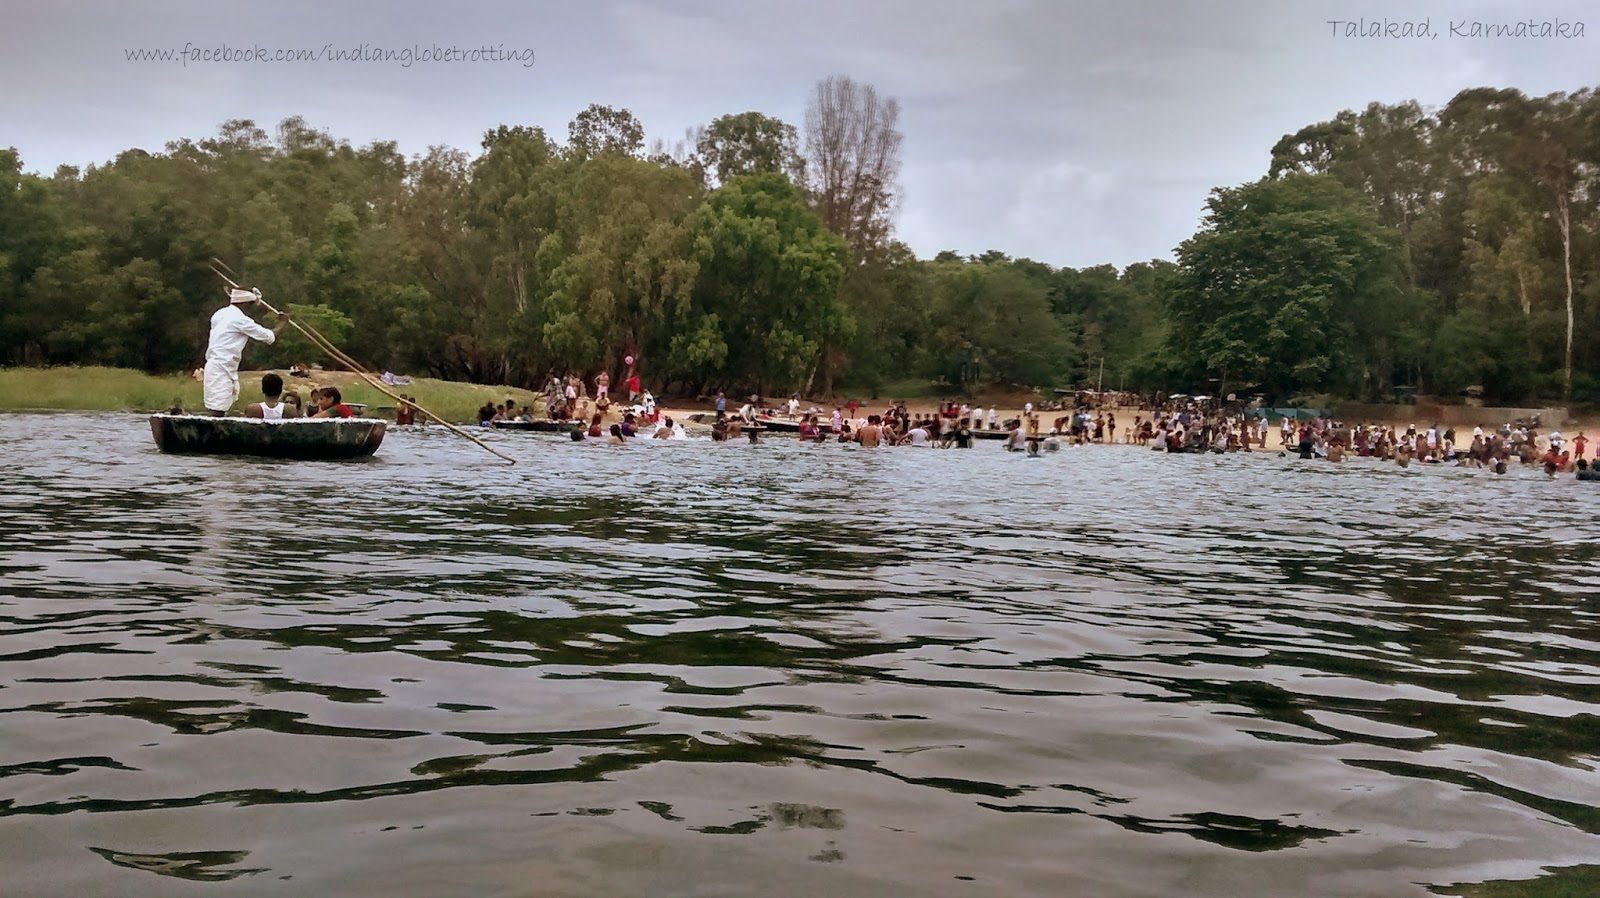 we can do a coracle ride in the kaveri river. the sand here looks like beech sand